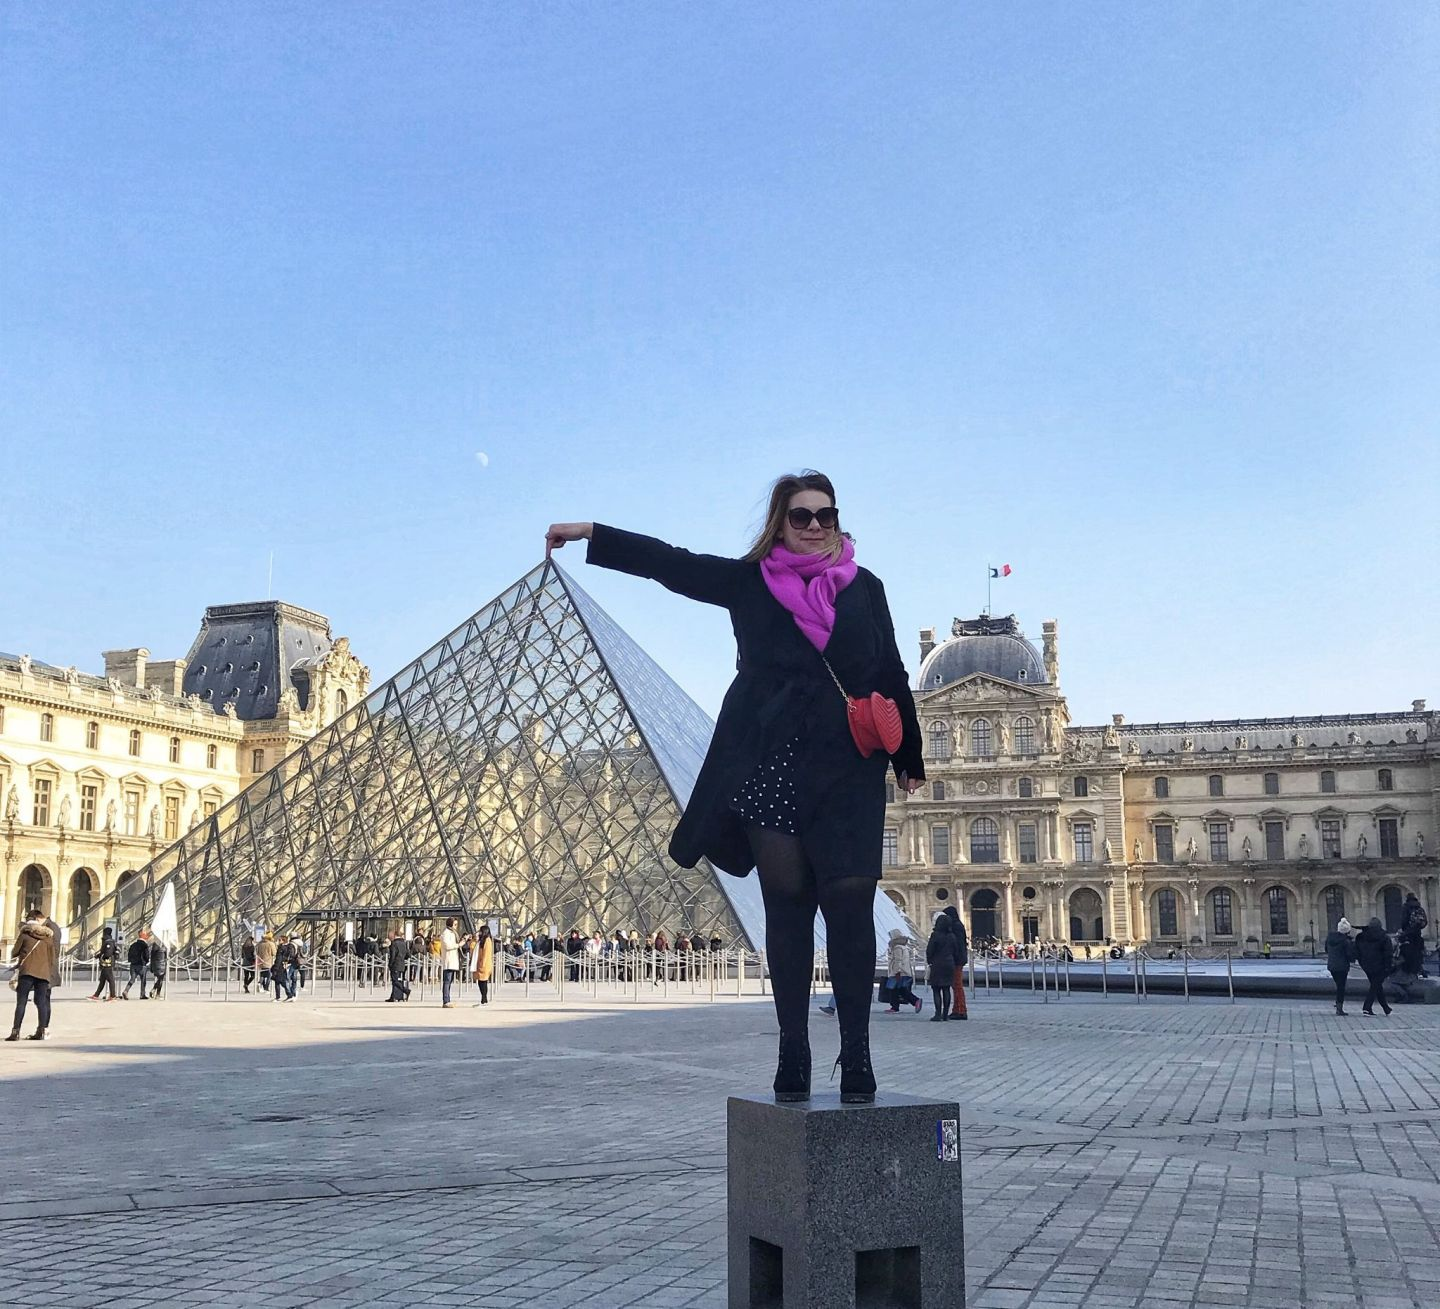 Me touching the top of the pyramid at The Louvre